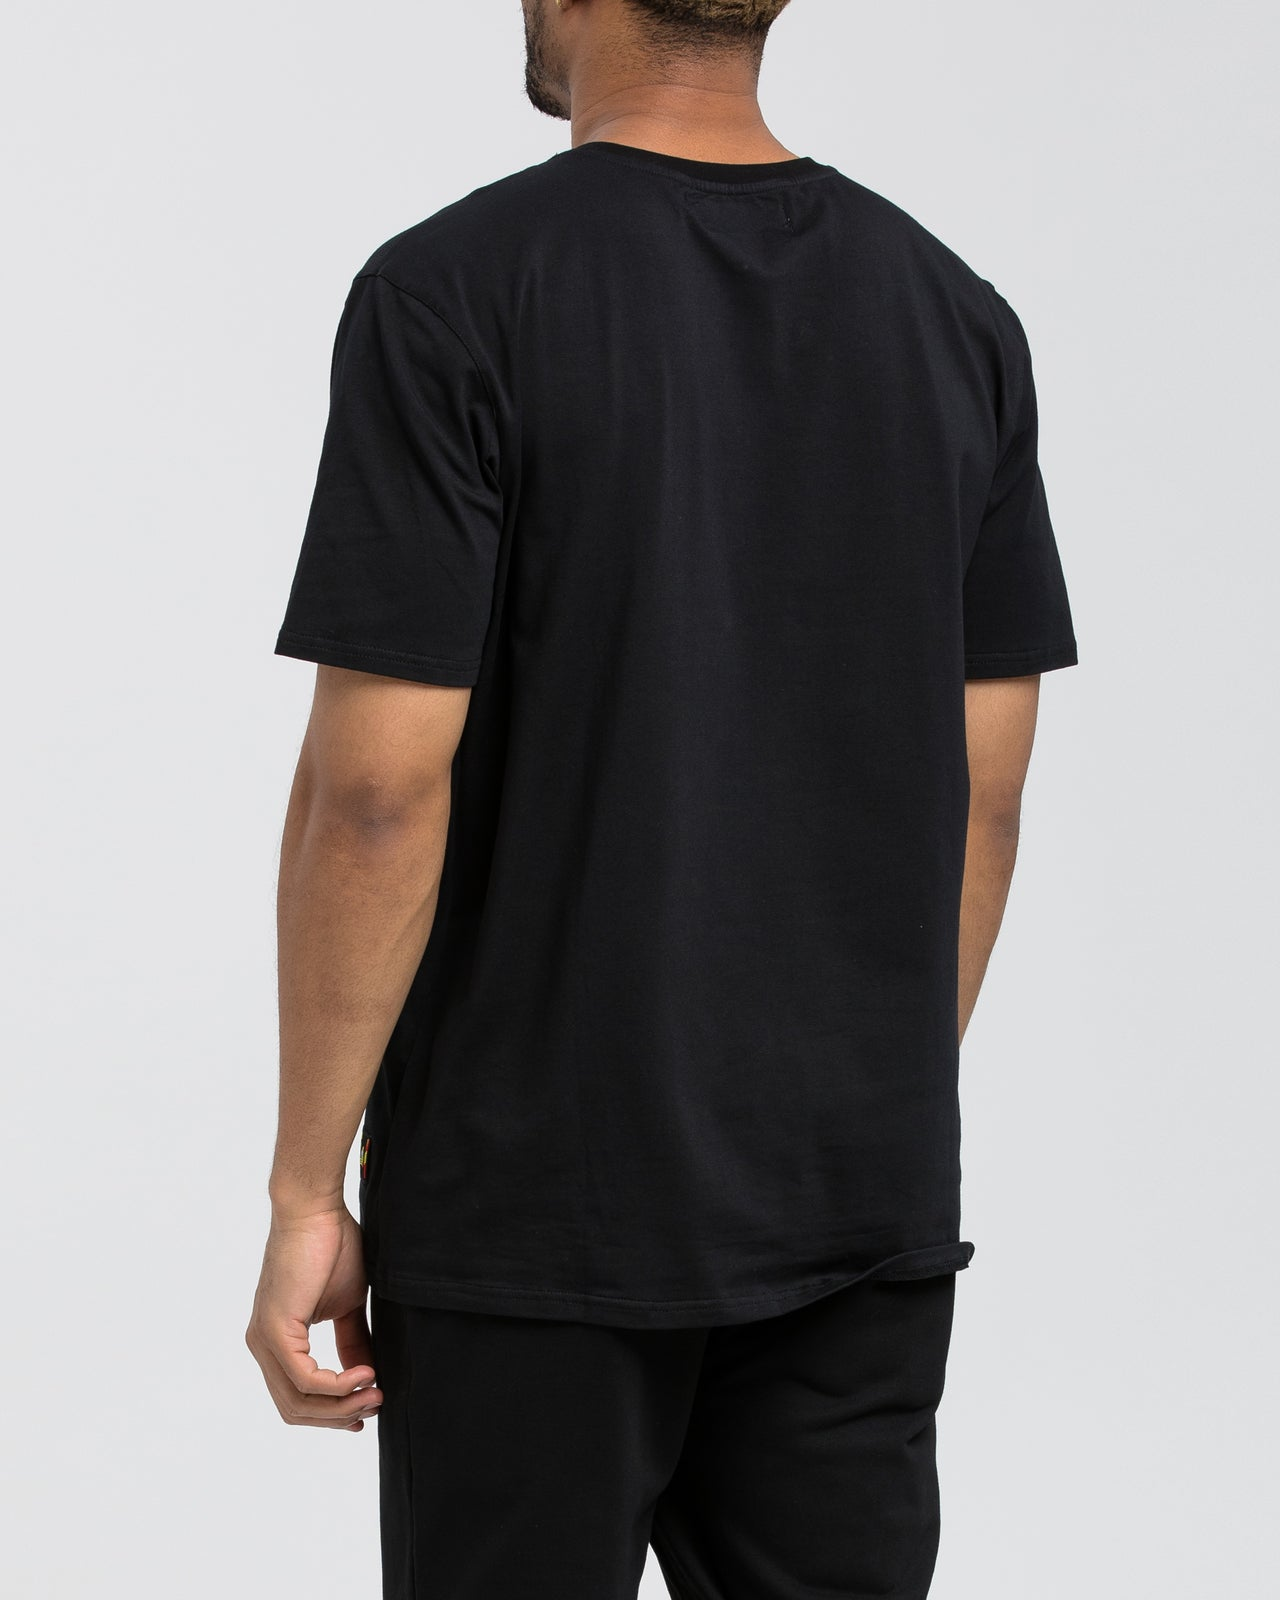 Whimsical Tee - Color: Black